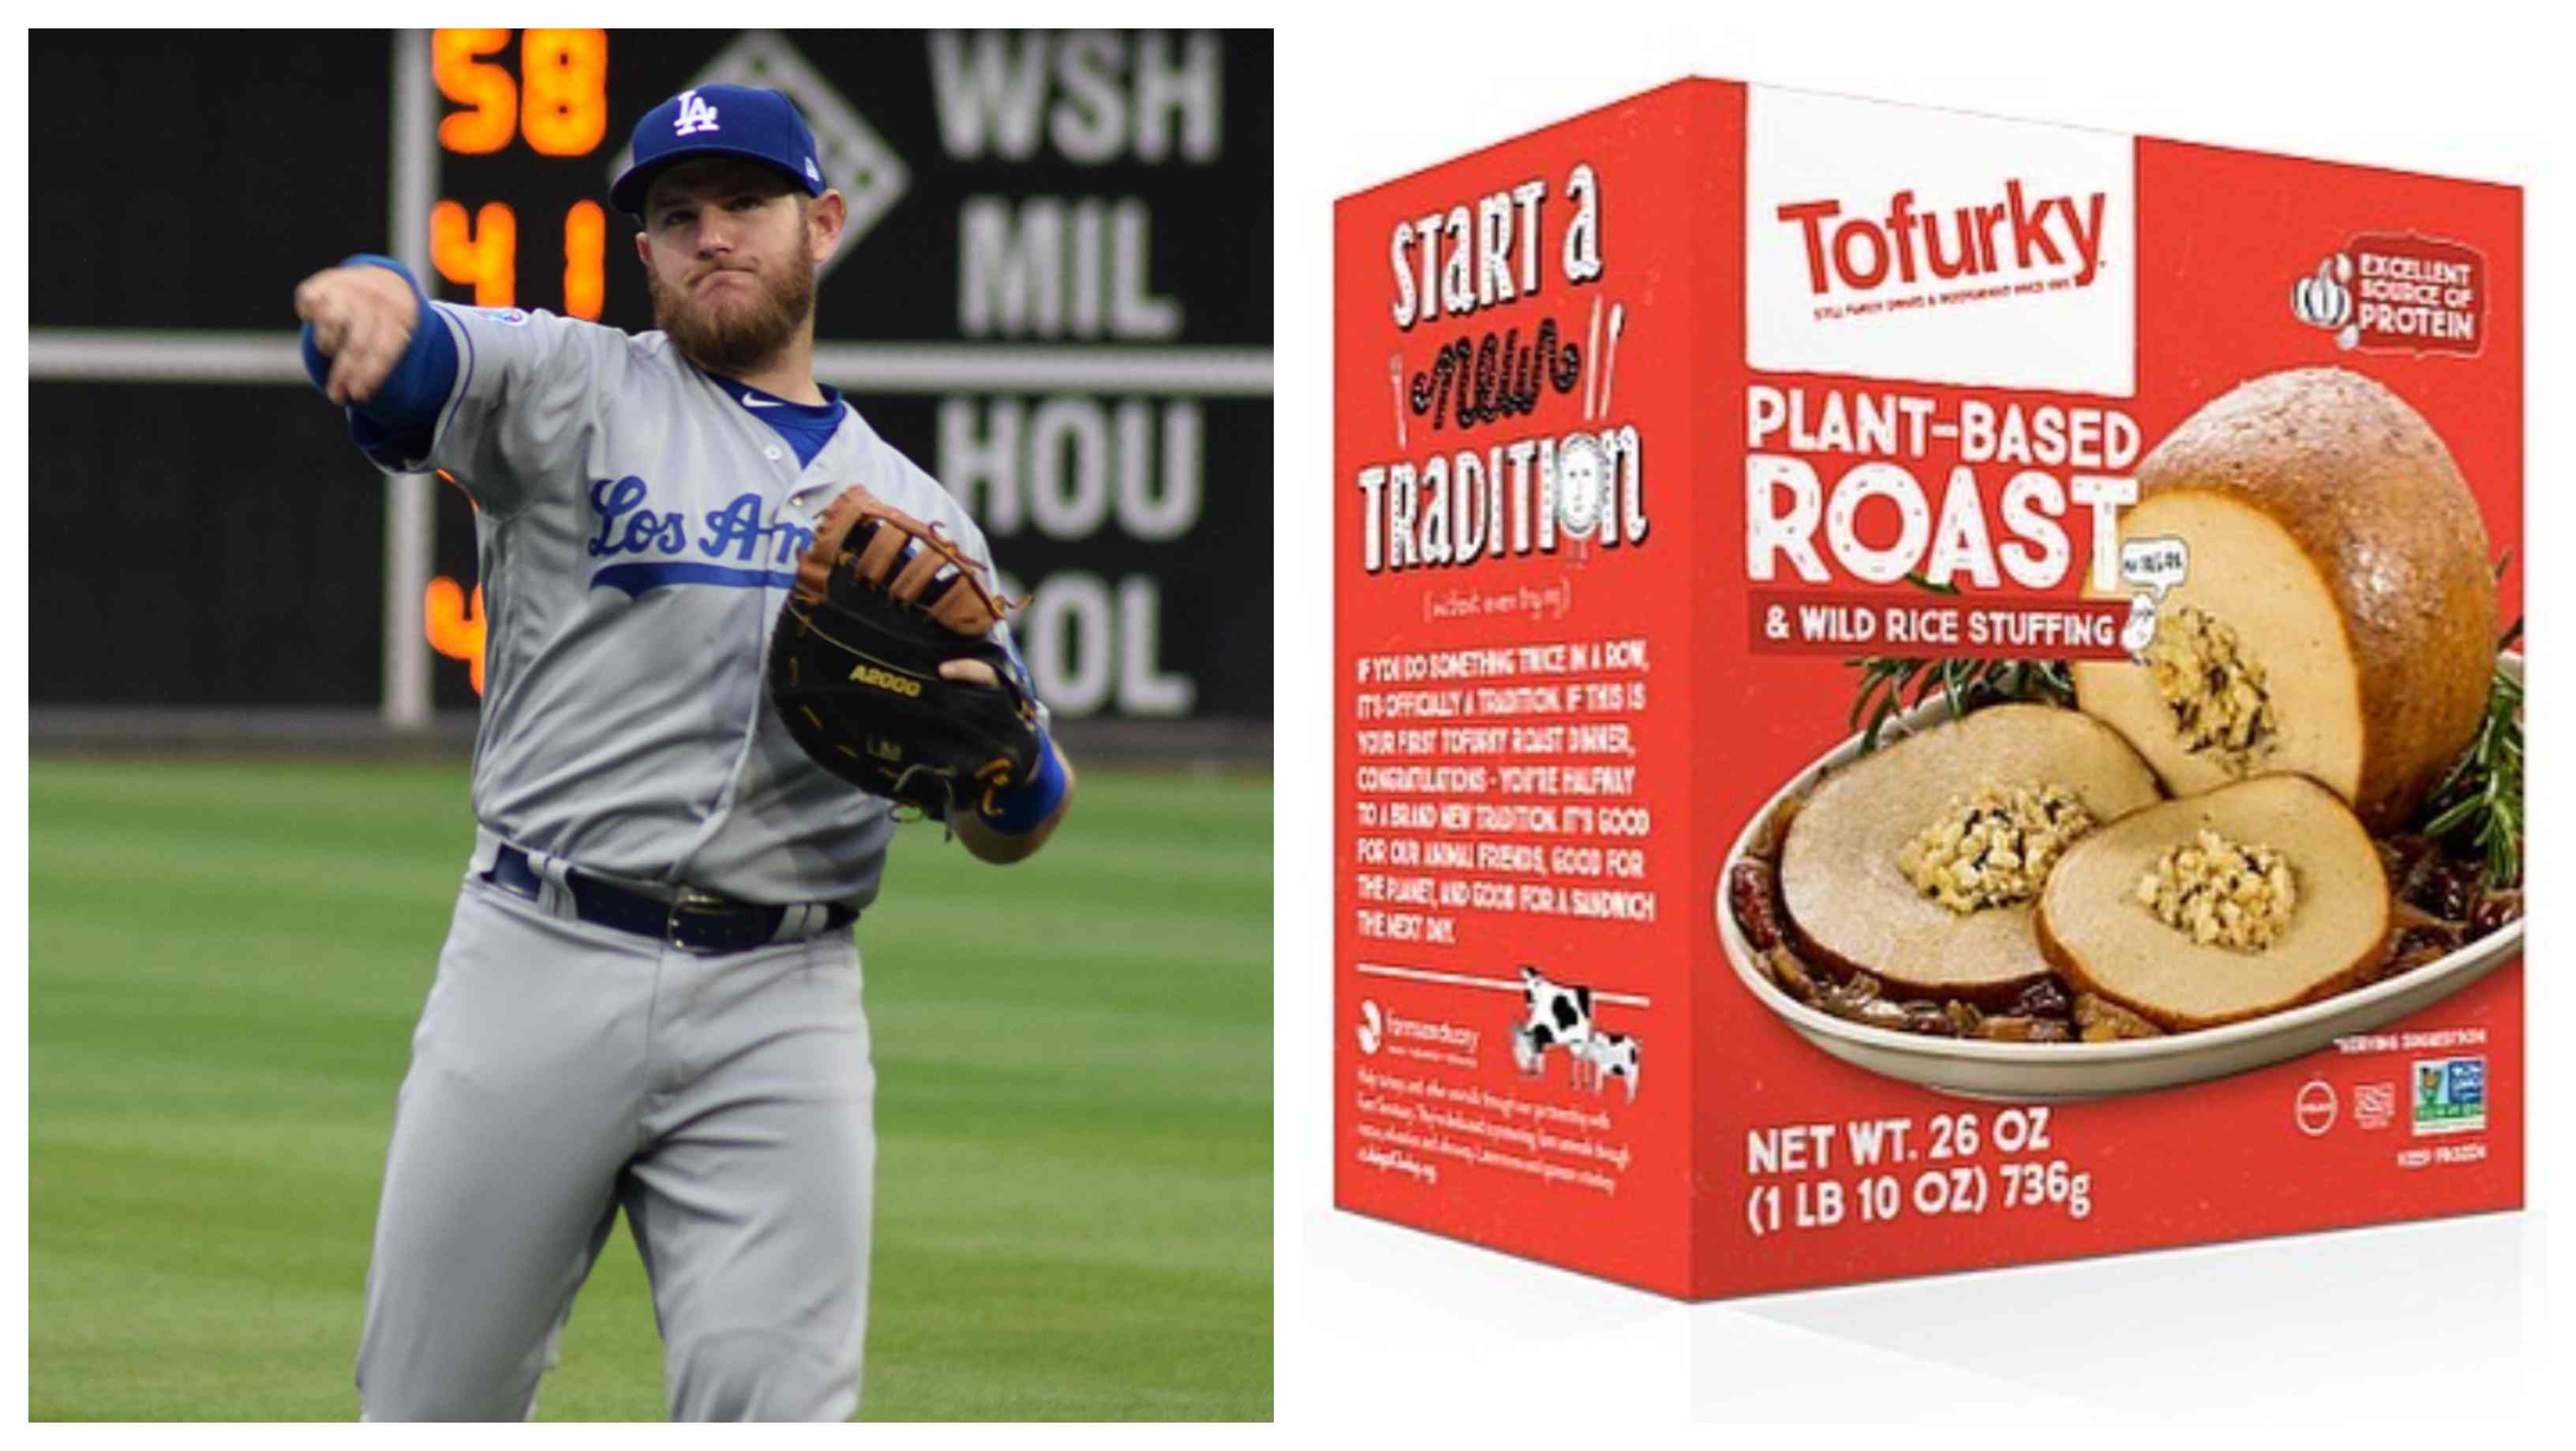 La Dodgers and vegan Tofurky